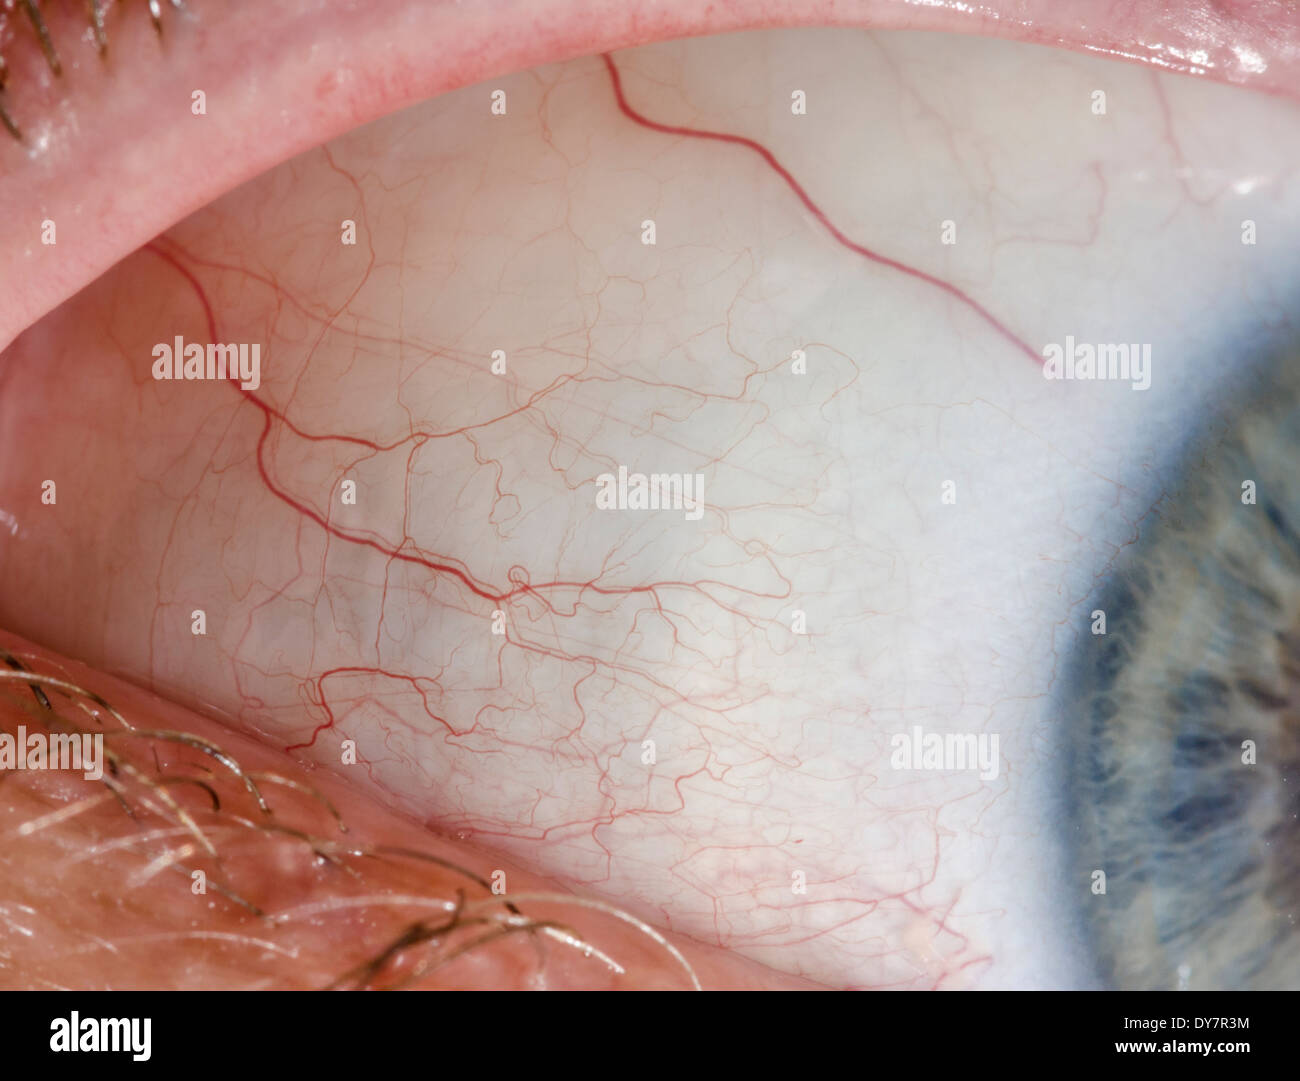 Sclera Stock Photos & Sclera Stock Images - Alamy